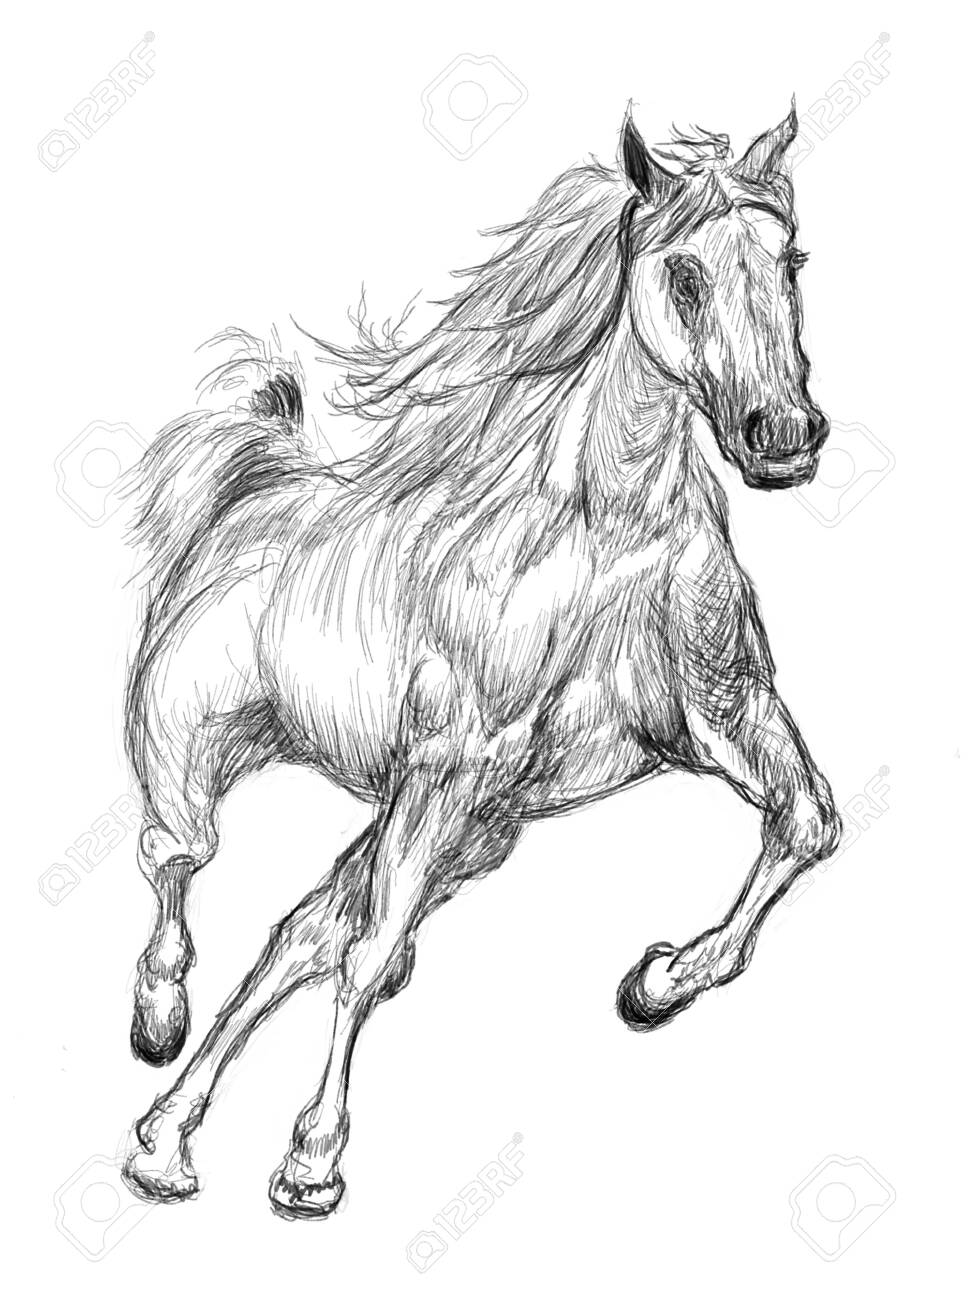 Horse Hand Drawn Illustration Art Design Wall Inspiration Stock Photo Picture And Royalty Free Image Image 135359273